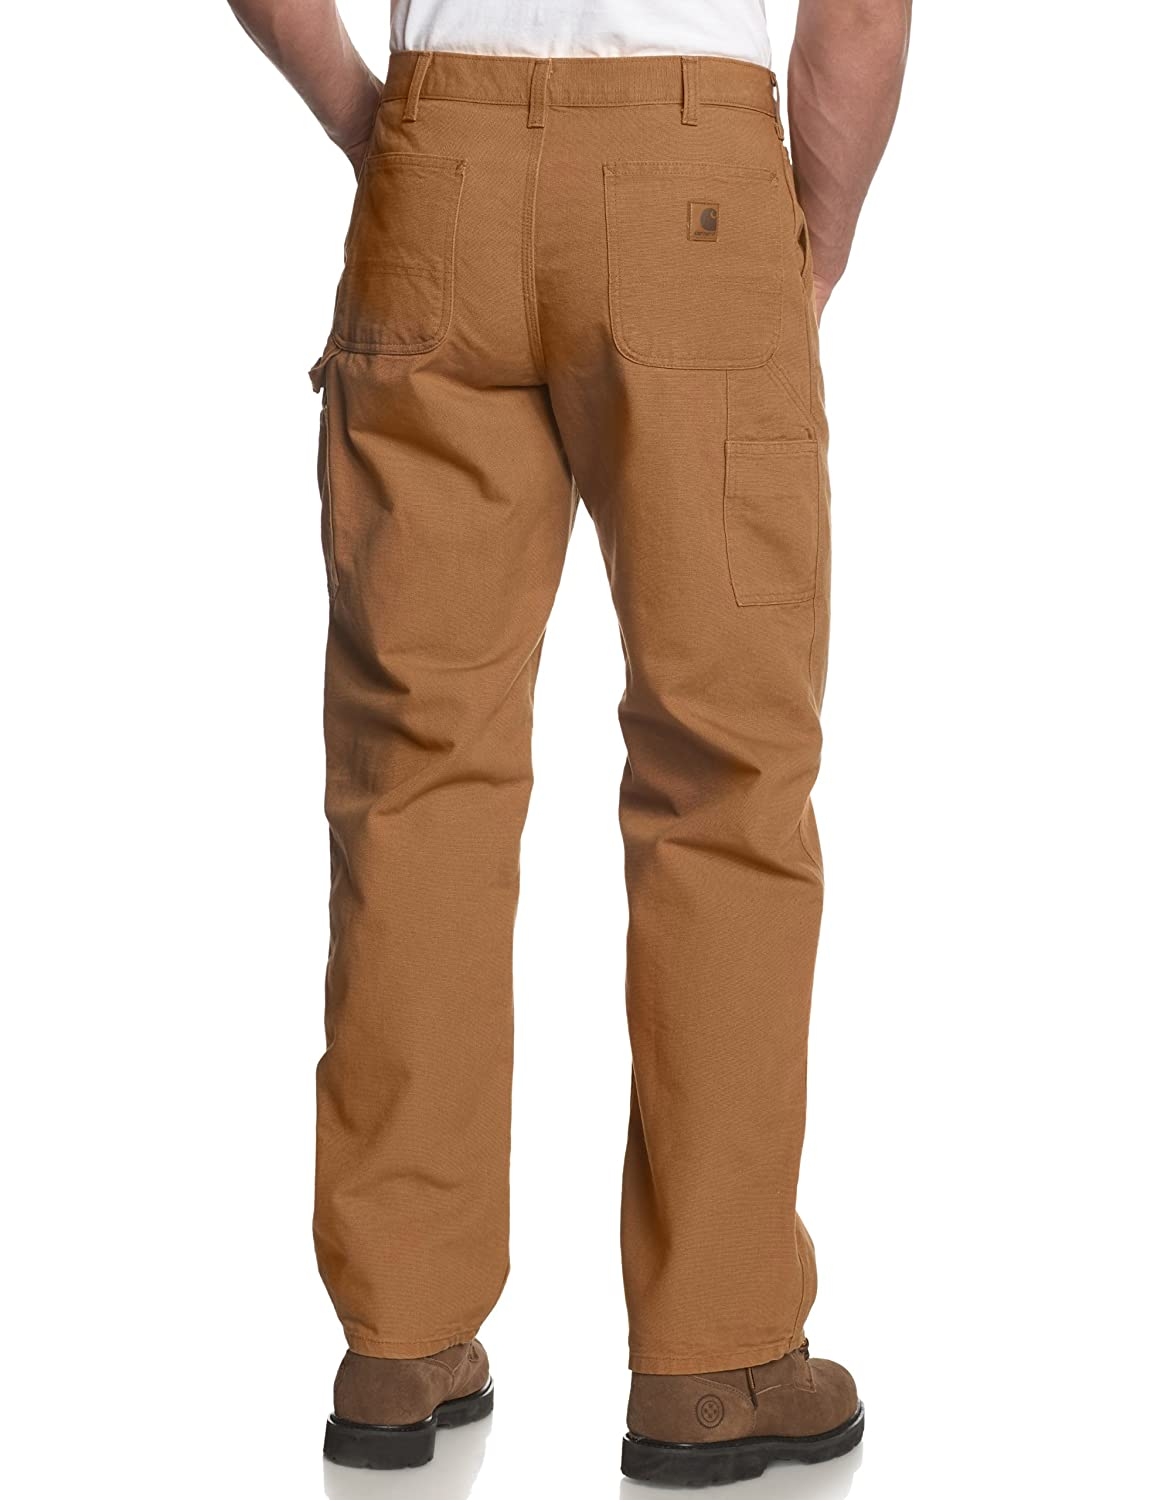 40d4f10727 Amazon.com: Carhartt Men's Big & Tall Washed Duck Work Dungaree B11:  Clothing